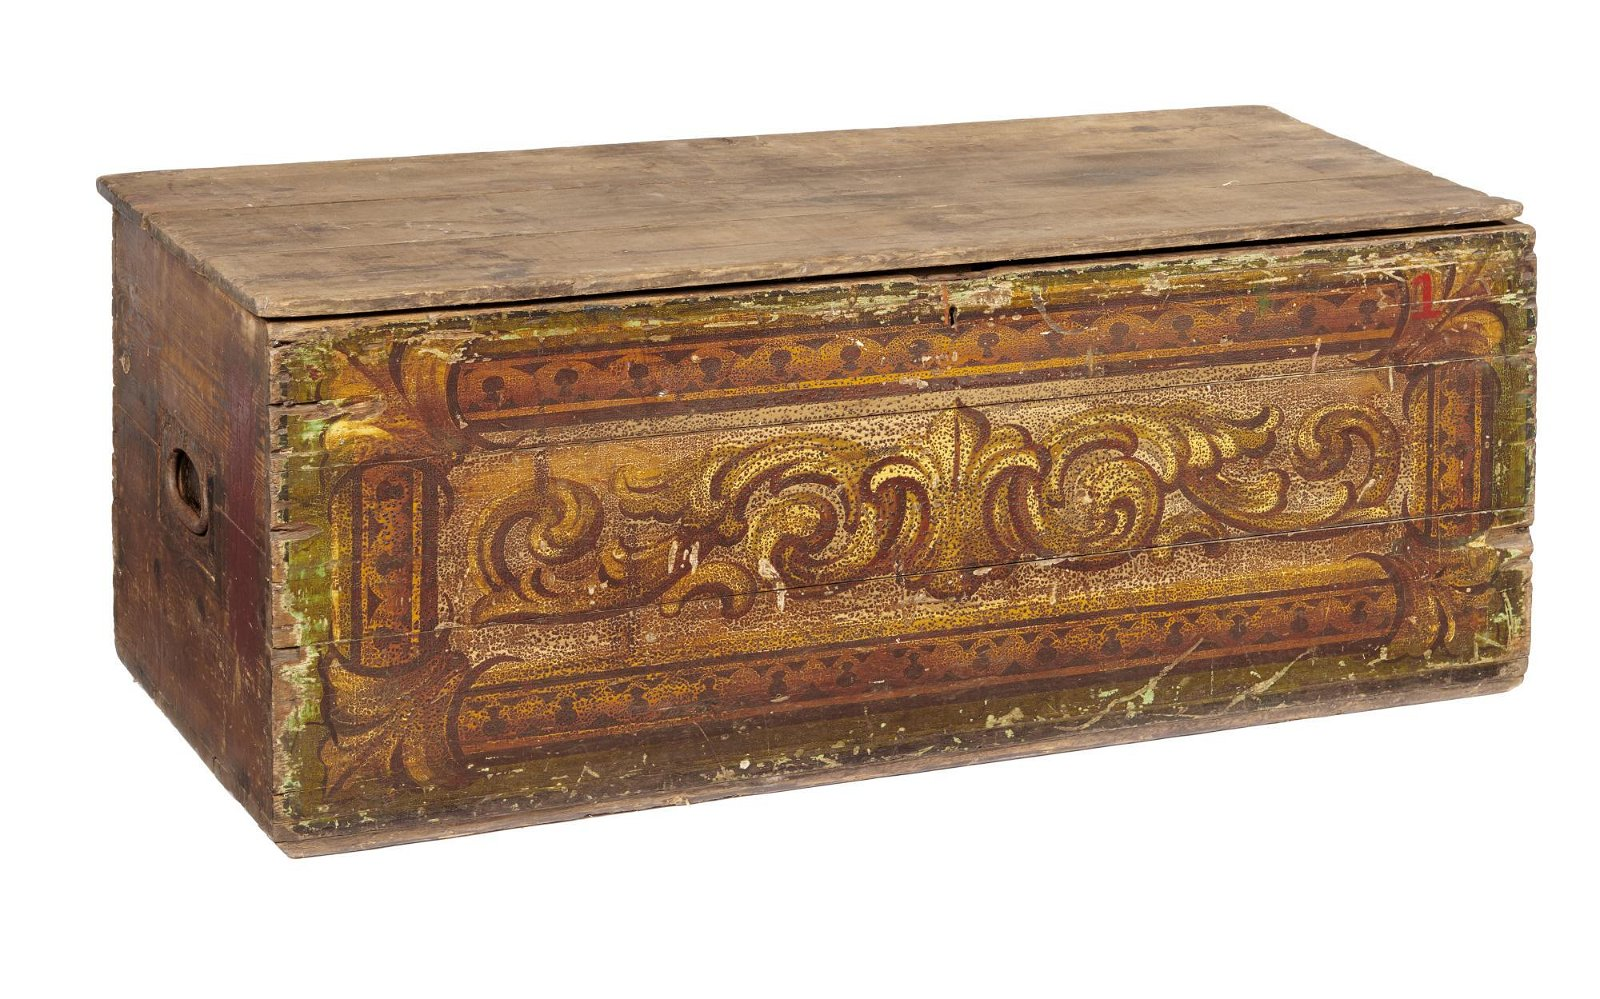 Storage: A similar painted pine chest